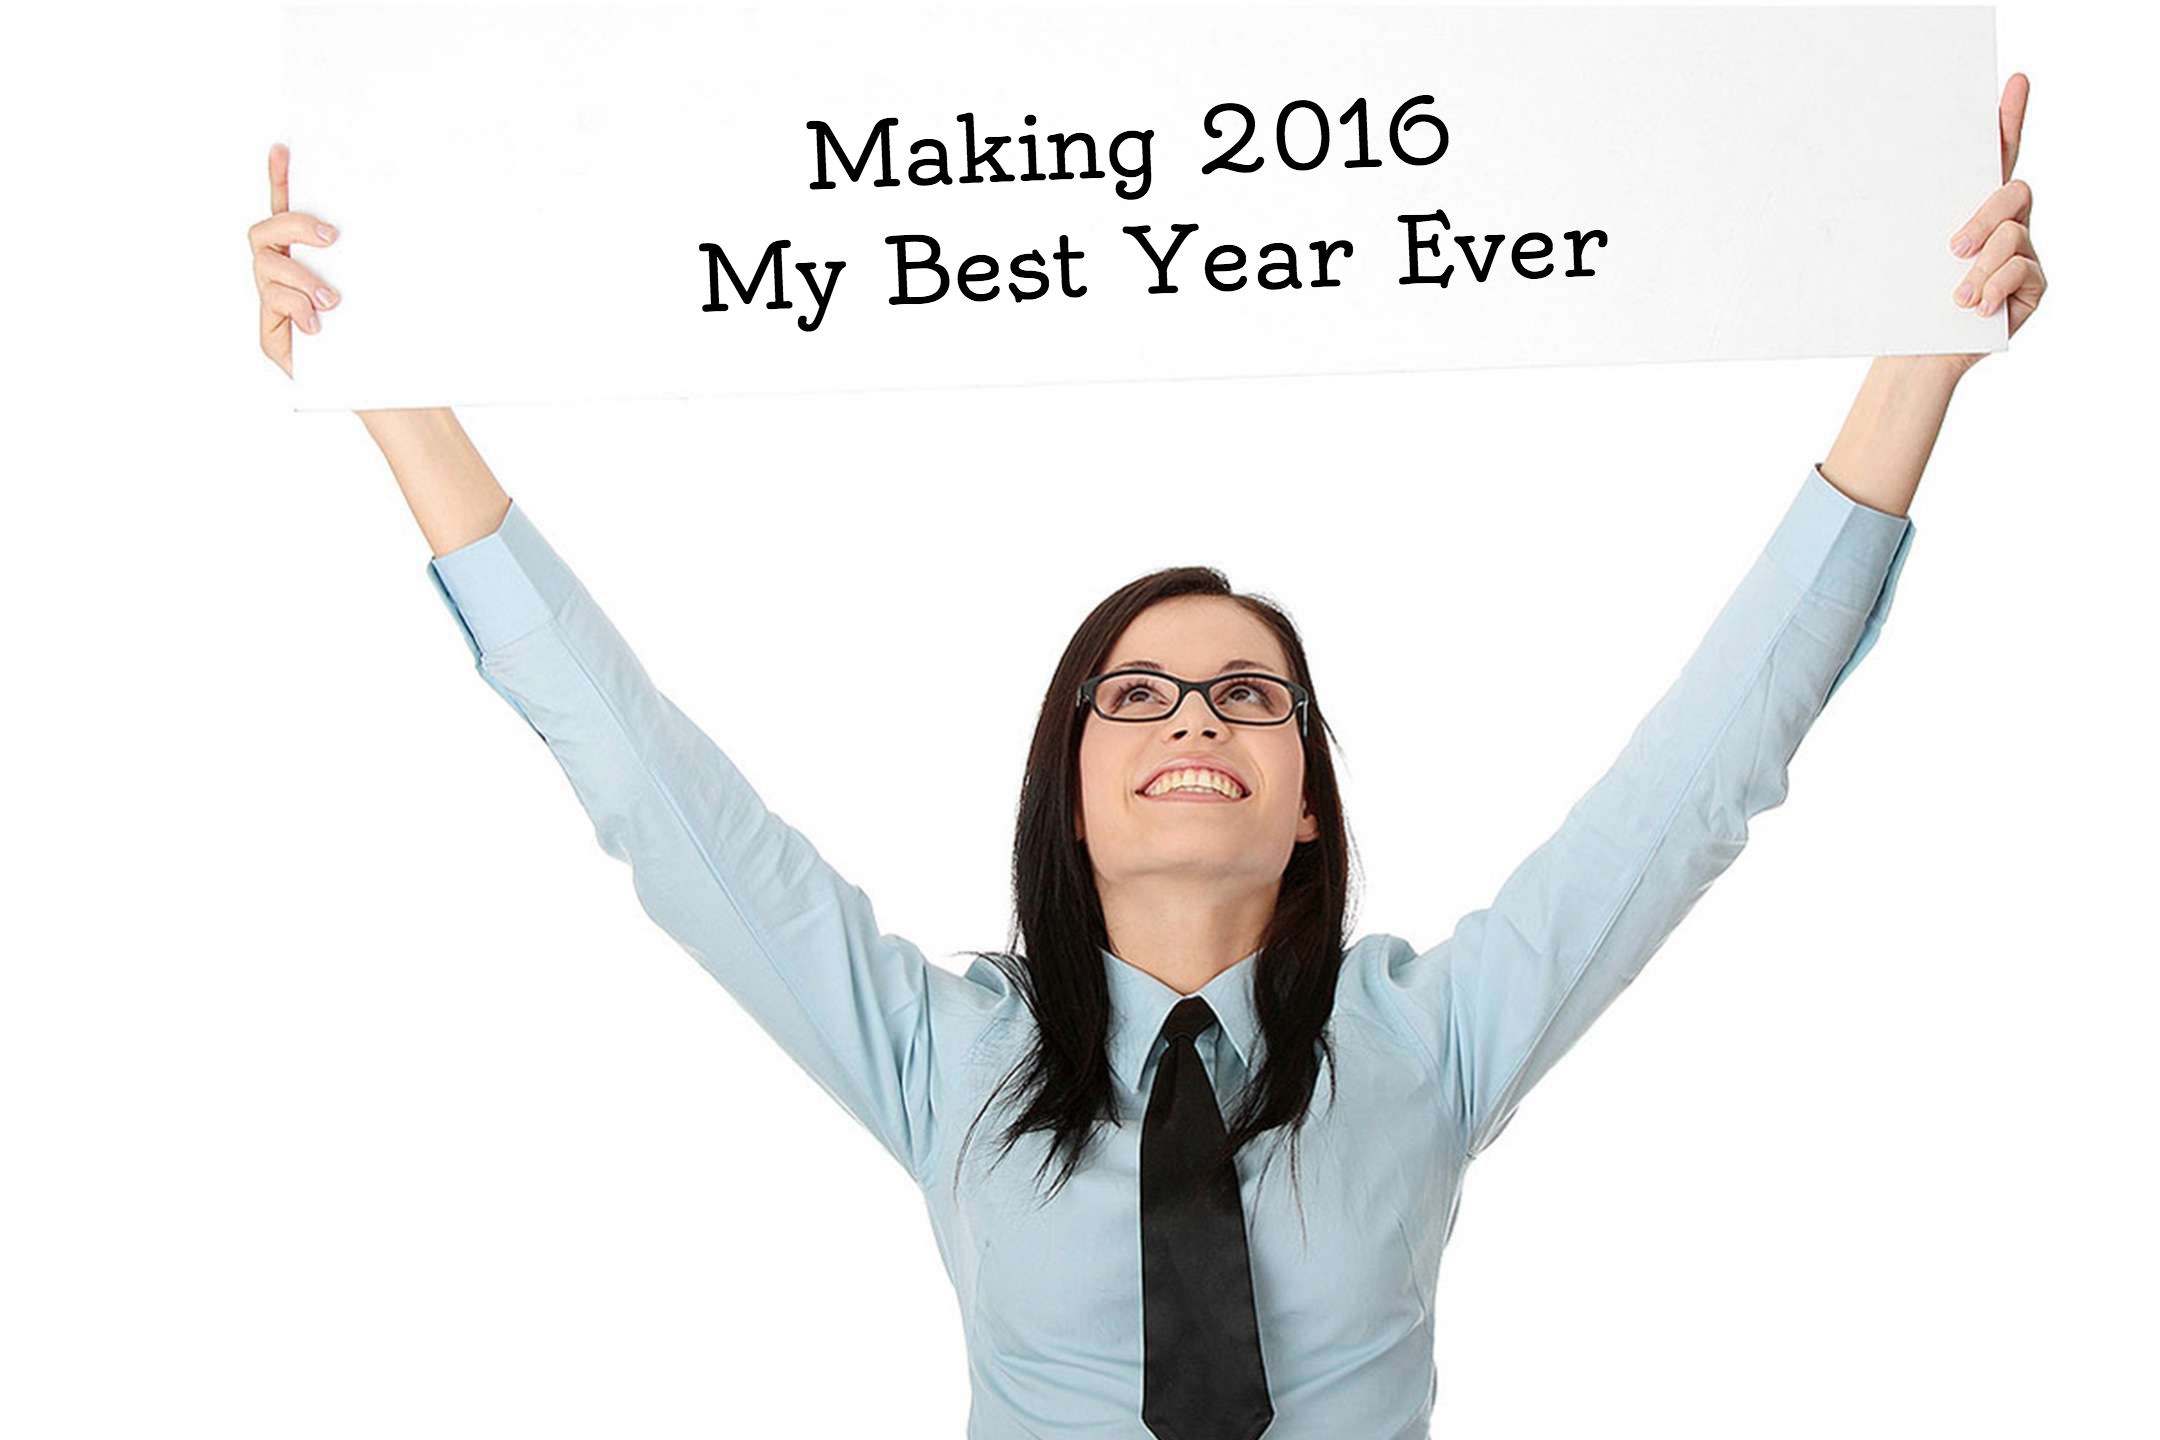 Making This Year, My Best Year Ever